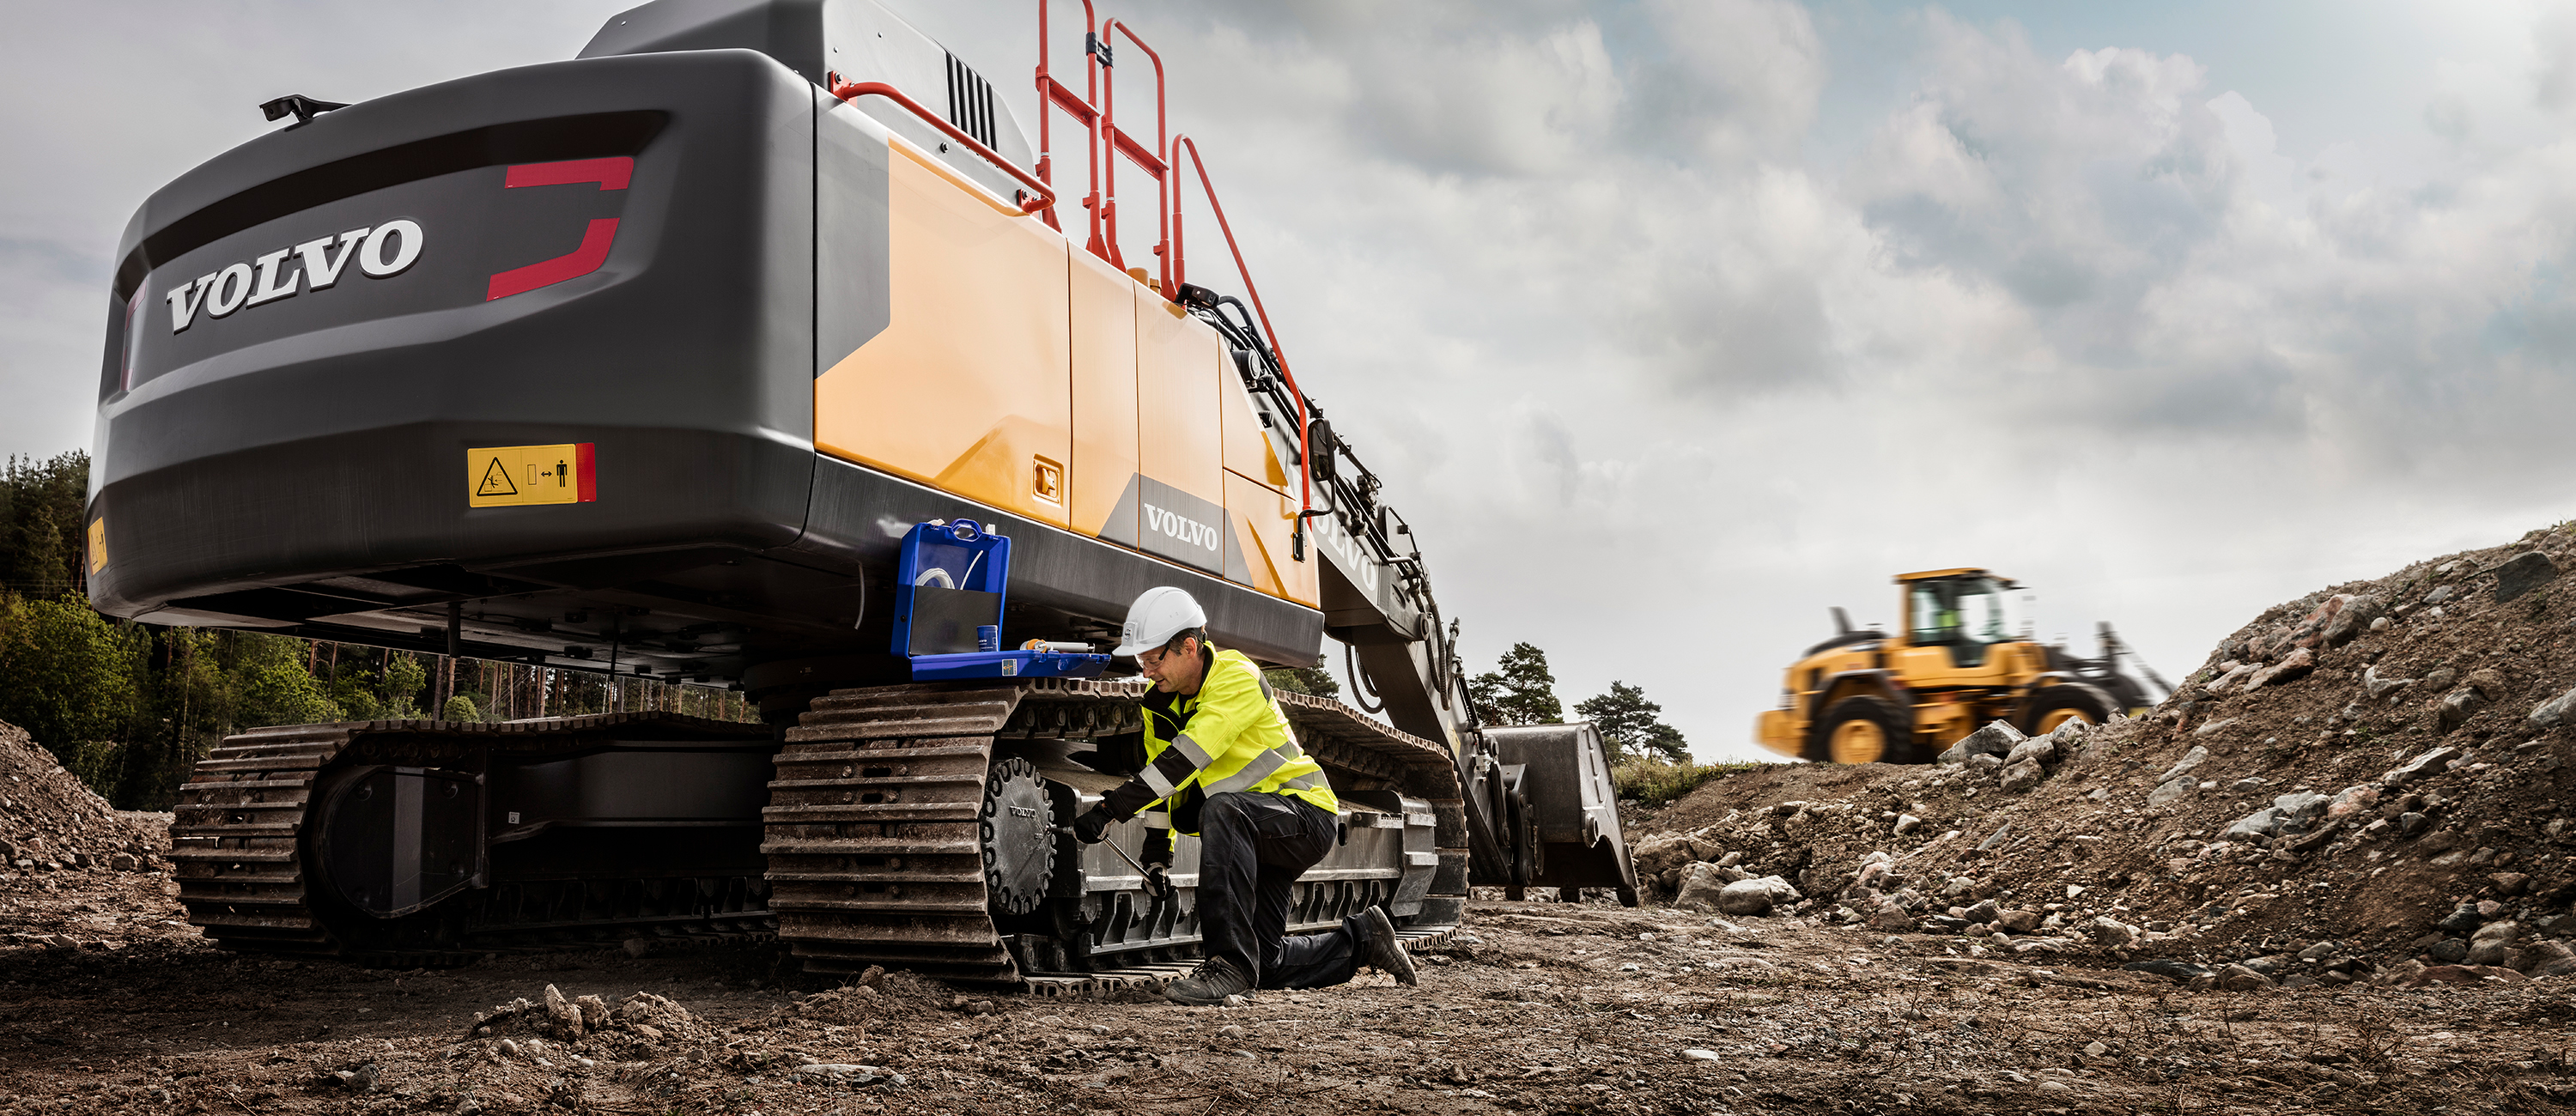 Readying Your Volvo Excavator for Spring